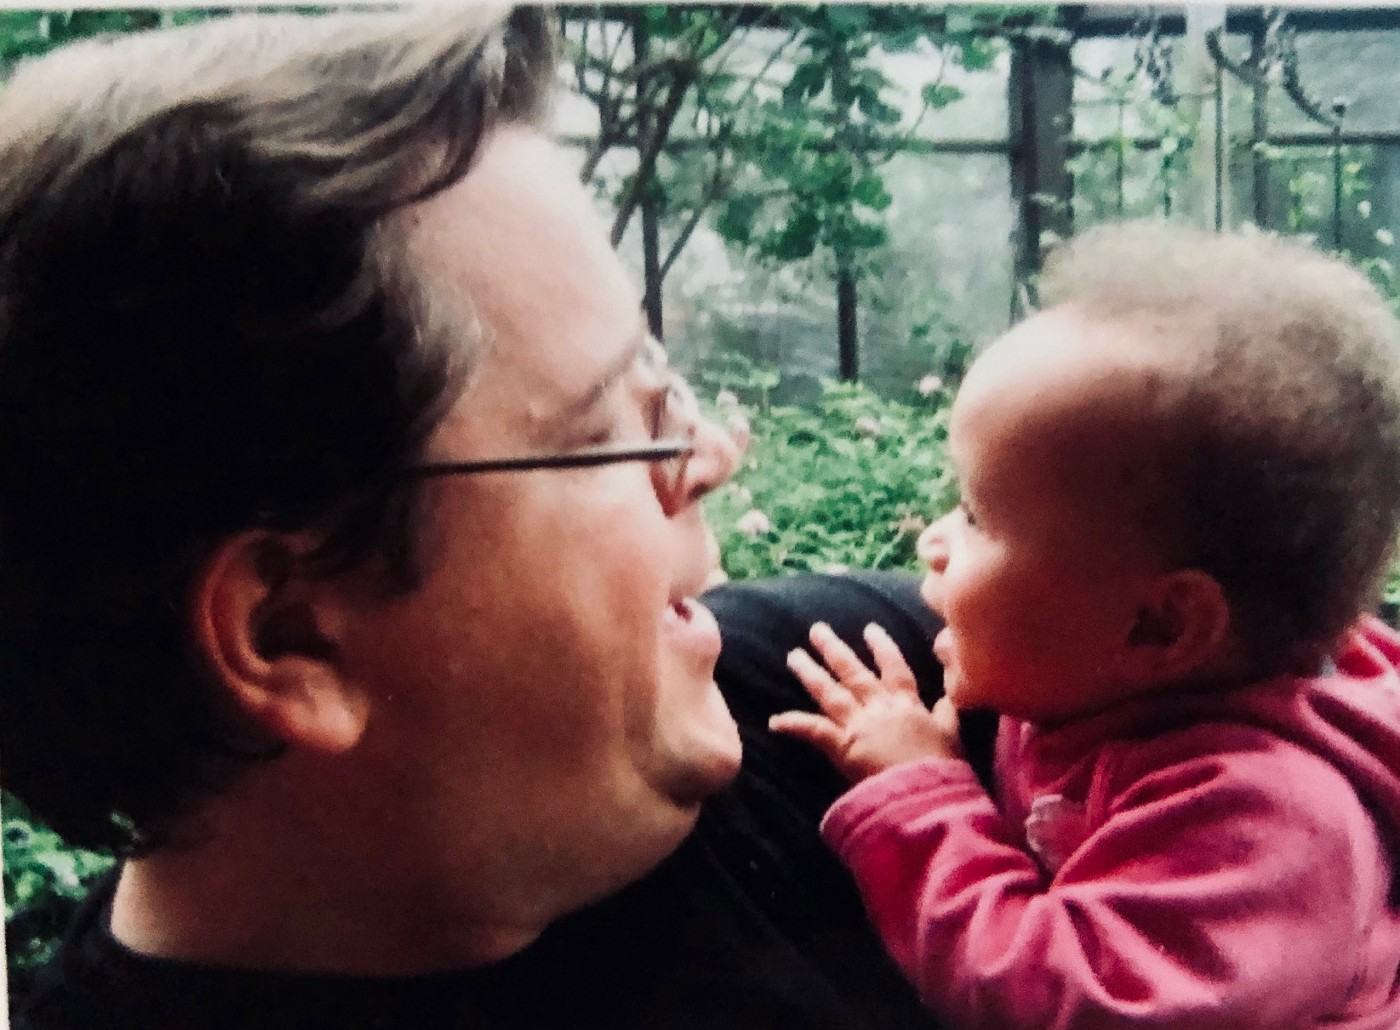 A photo of the author holding his baby daughter.